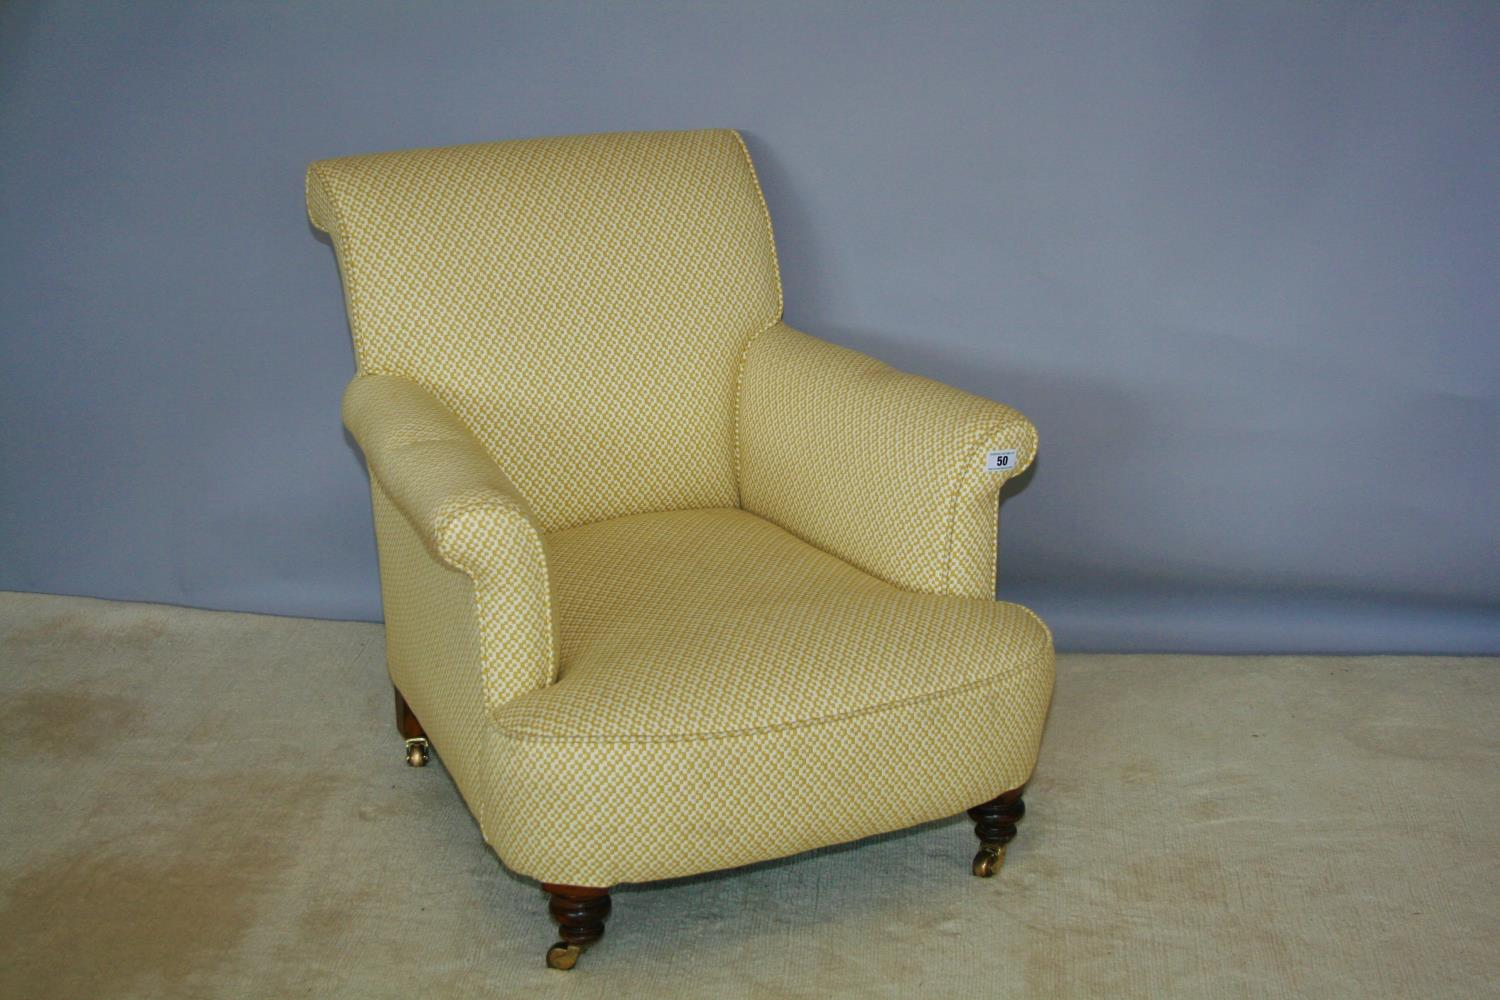 Edwardian upholstered occasional armchair on brass casters 75 W x 80 H x 90 D